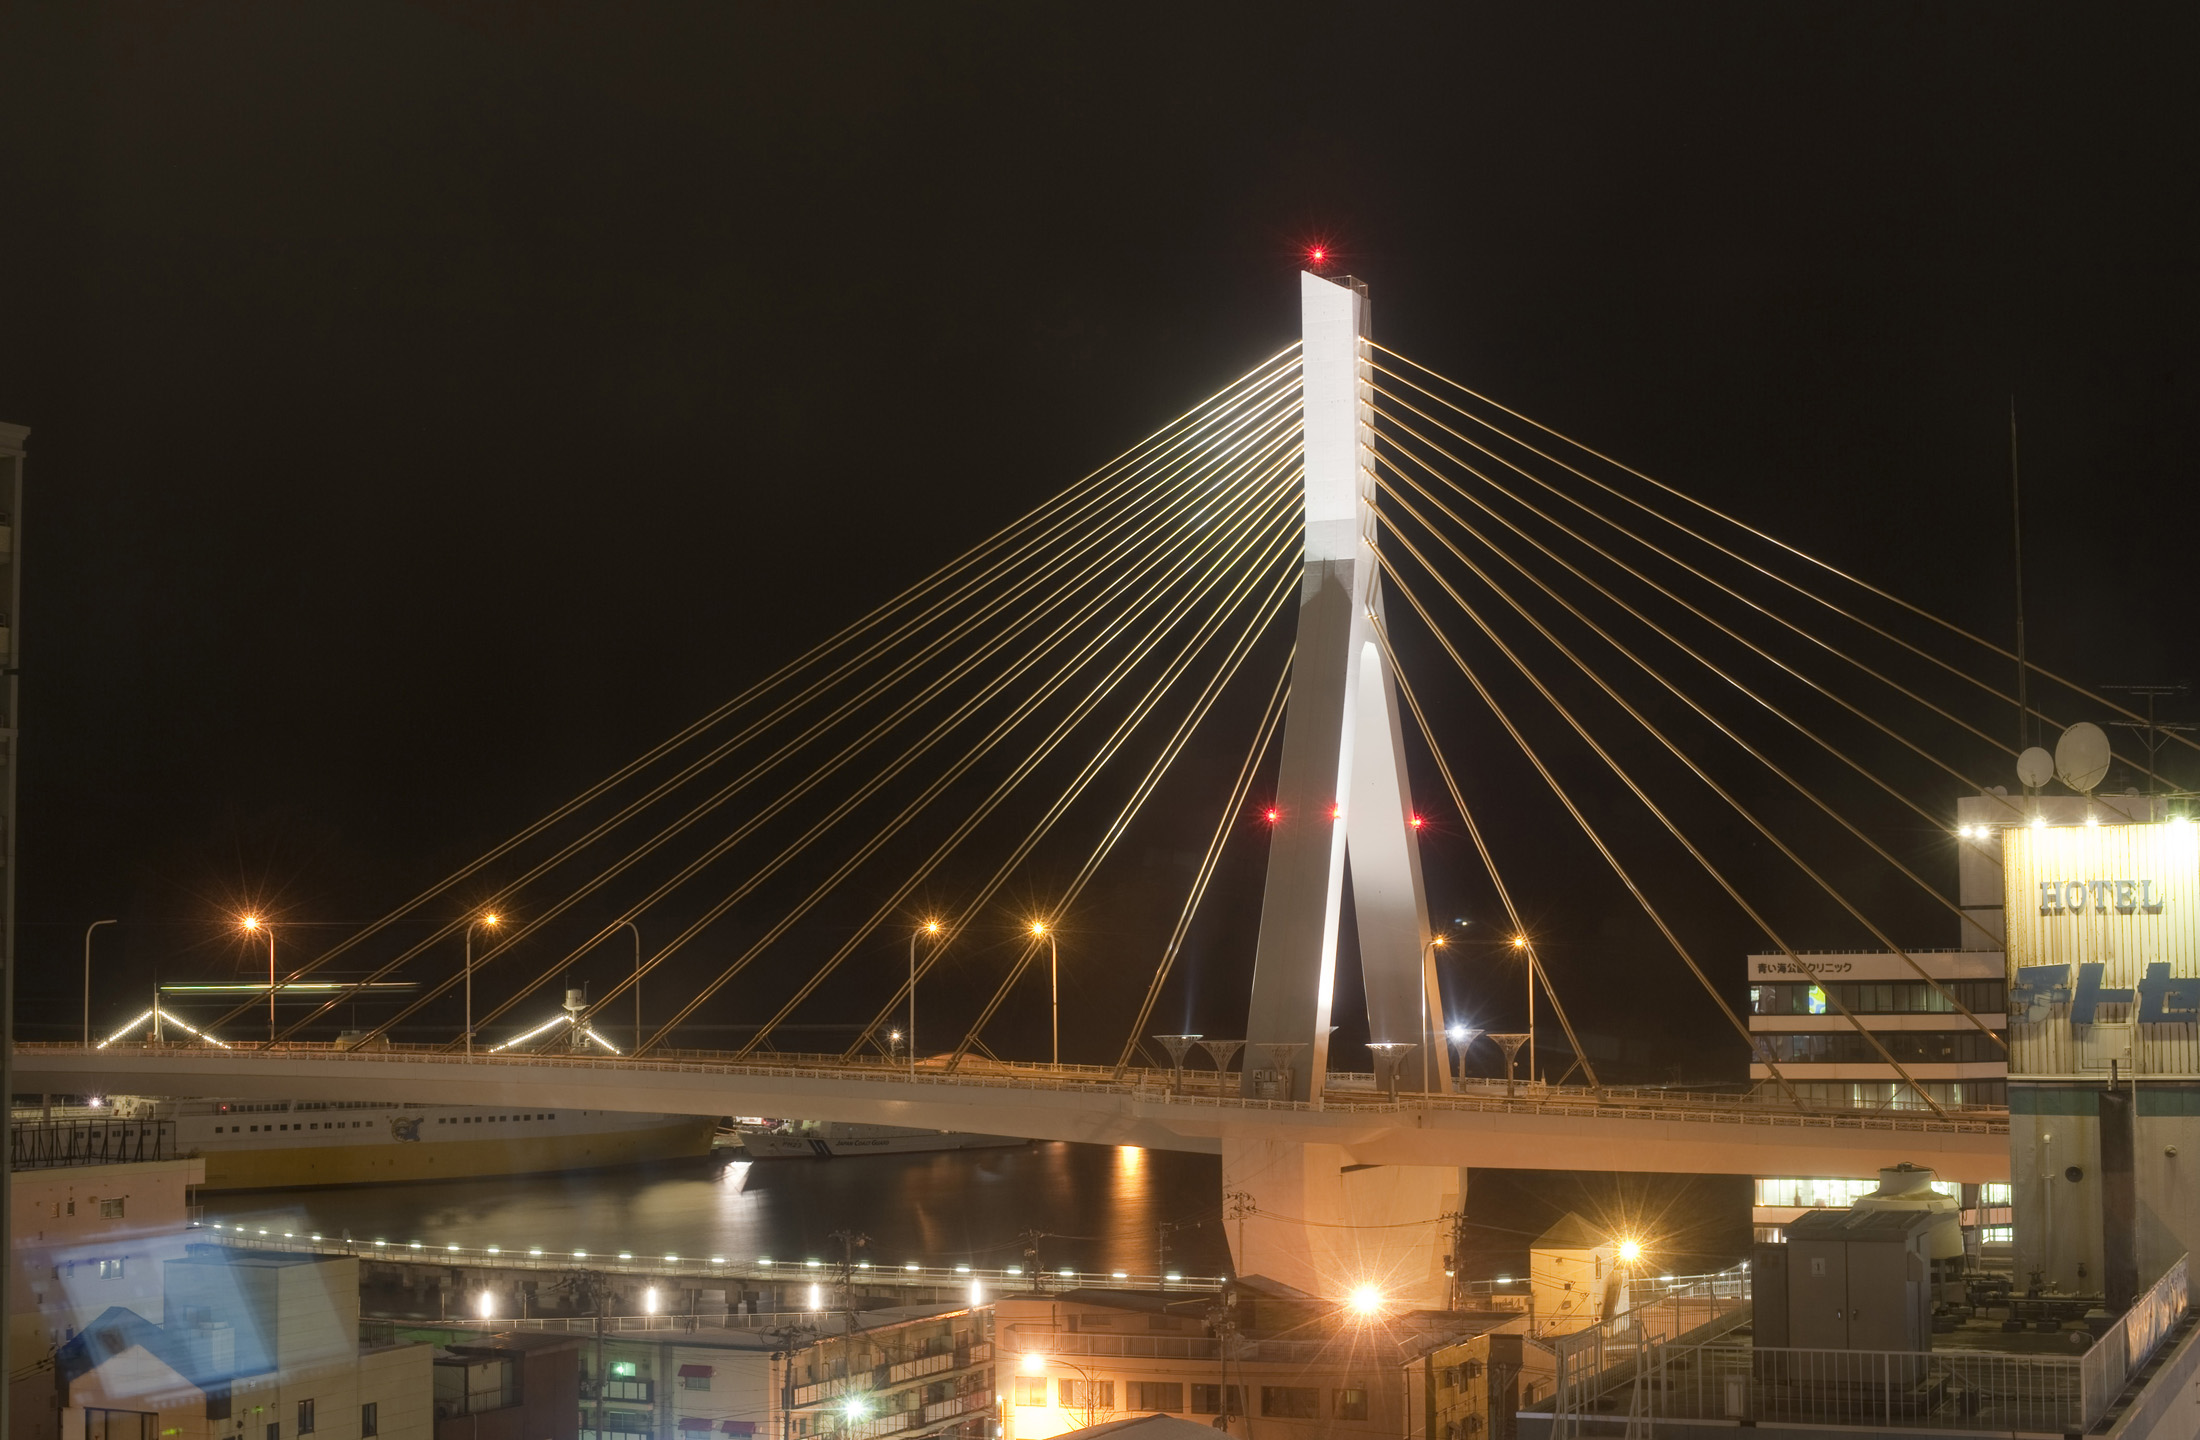 a view of the Aomori Bay Bridge at night, Aomori-shi, Japan